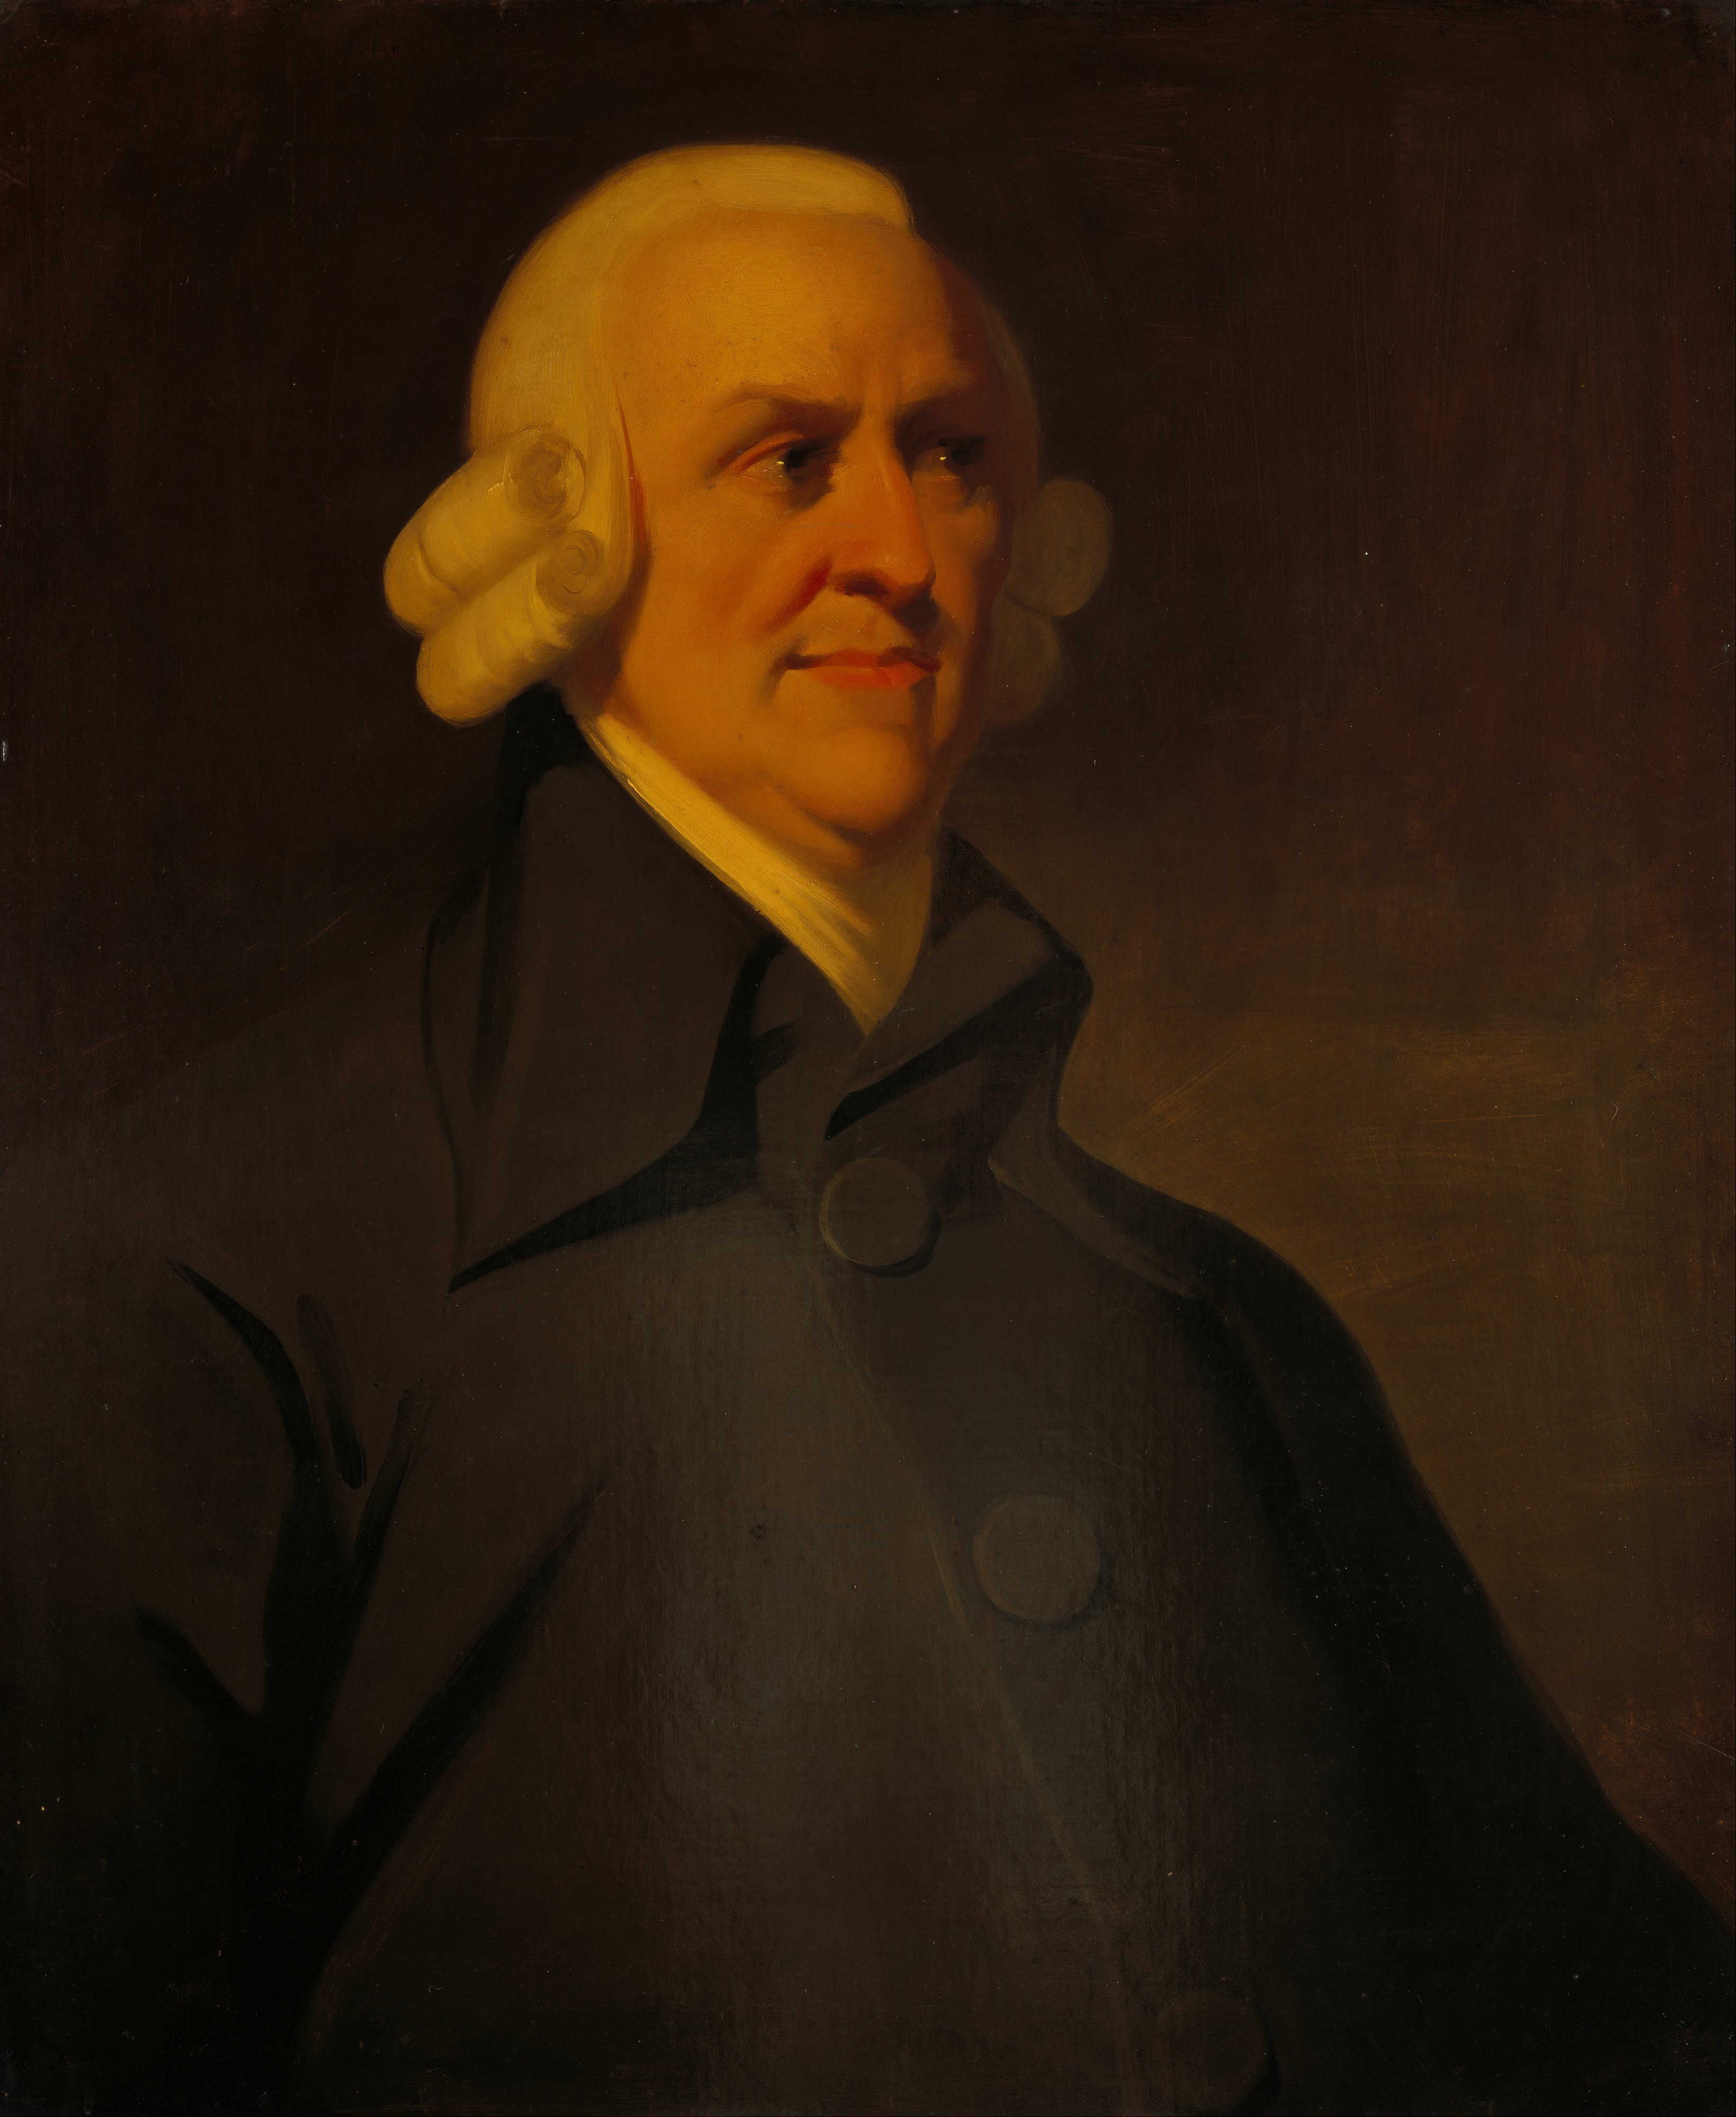 Image taken from Google Art Project http://commons.wikimedia.org/wiki/File:Adam_Smith,_1723_-_1790._Political_economist_-_Google_Art_Project.jpg#filelinks